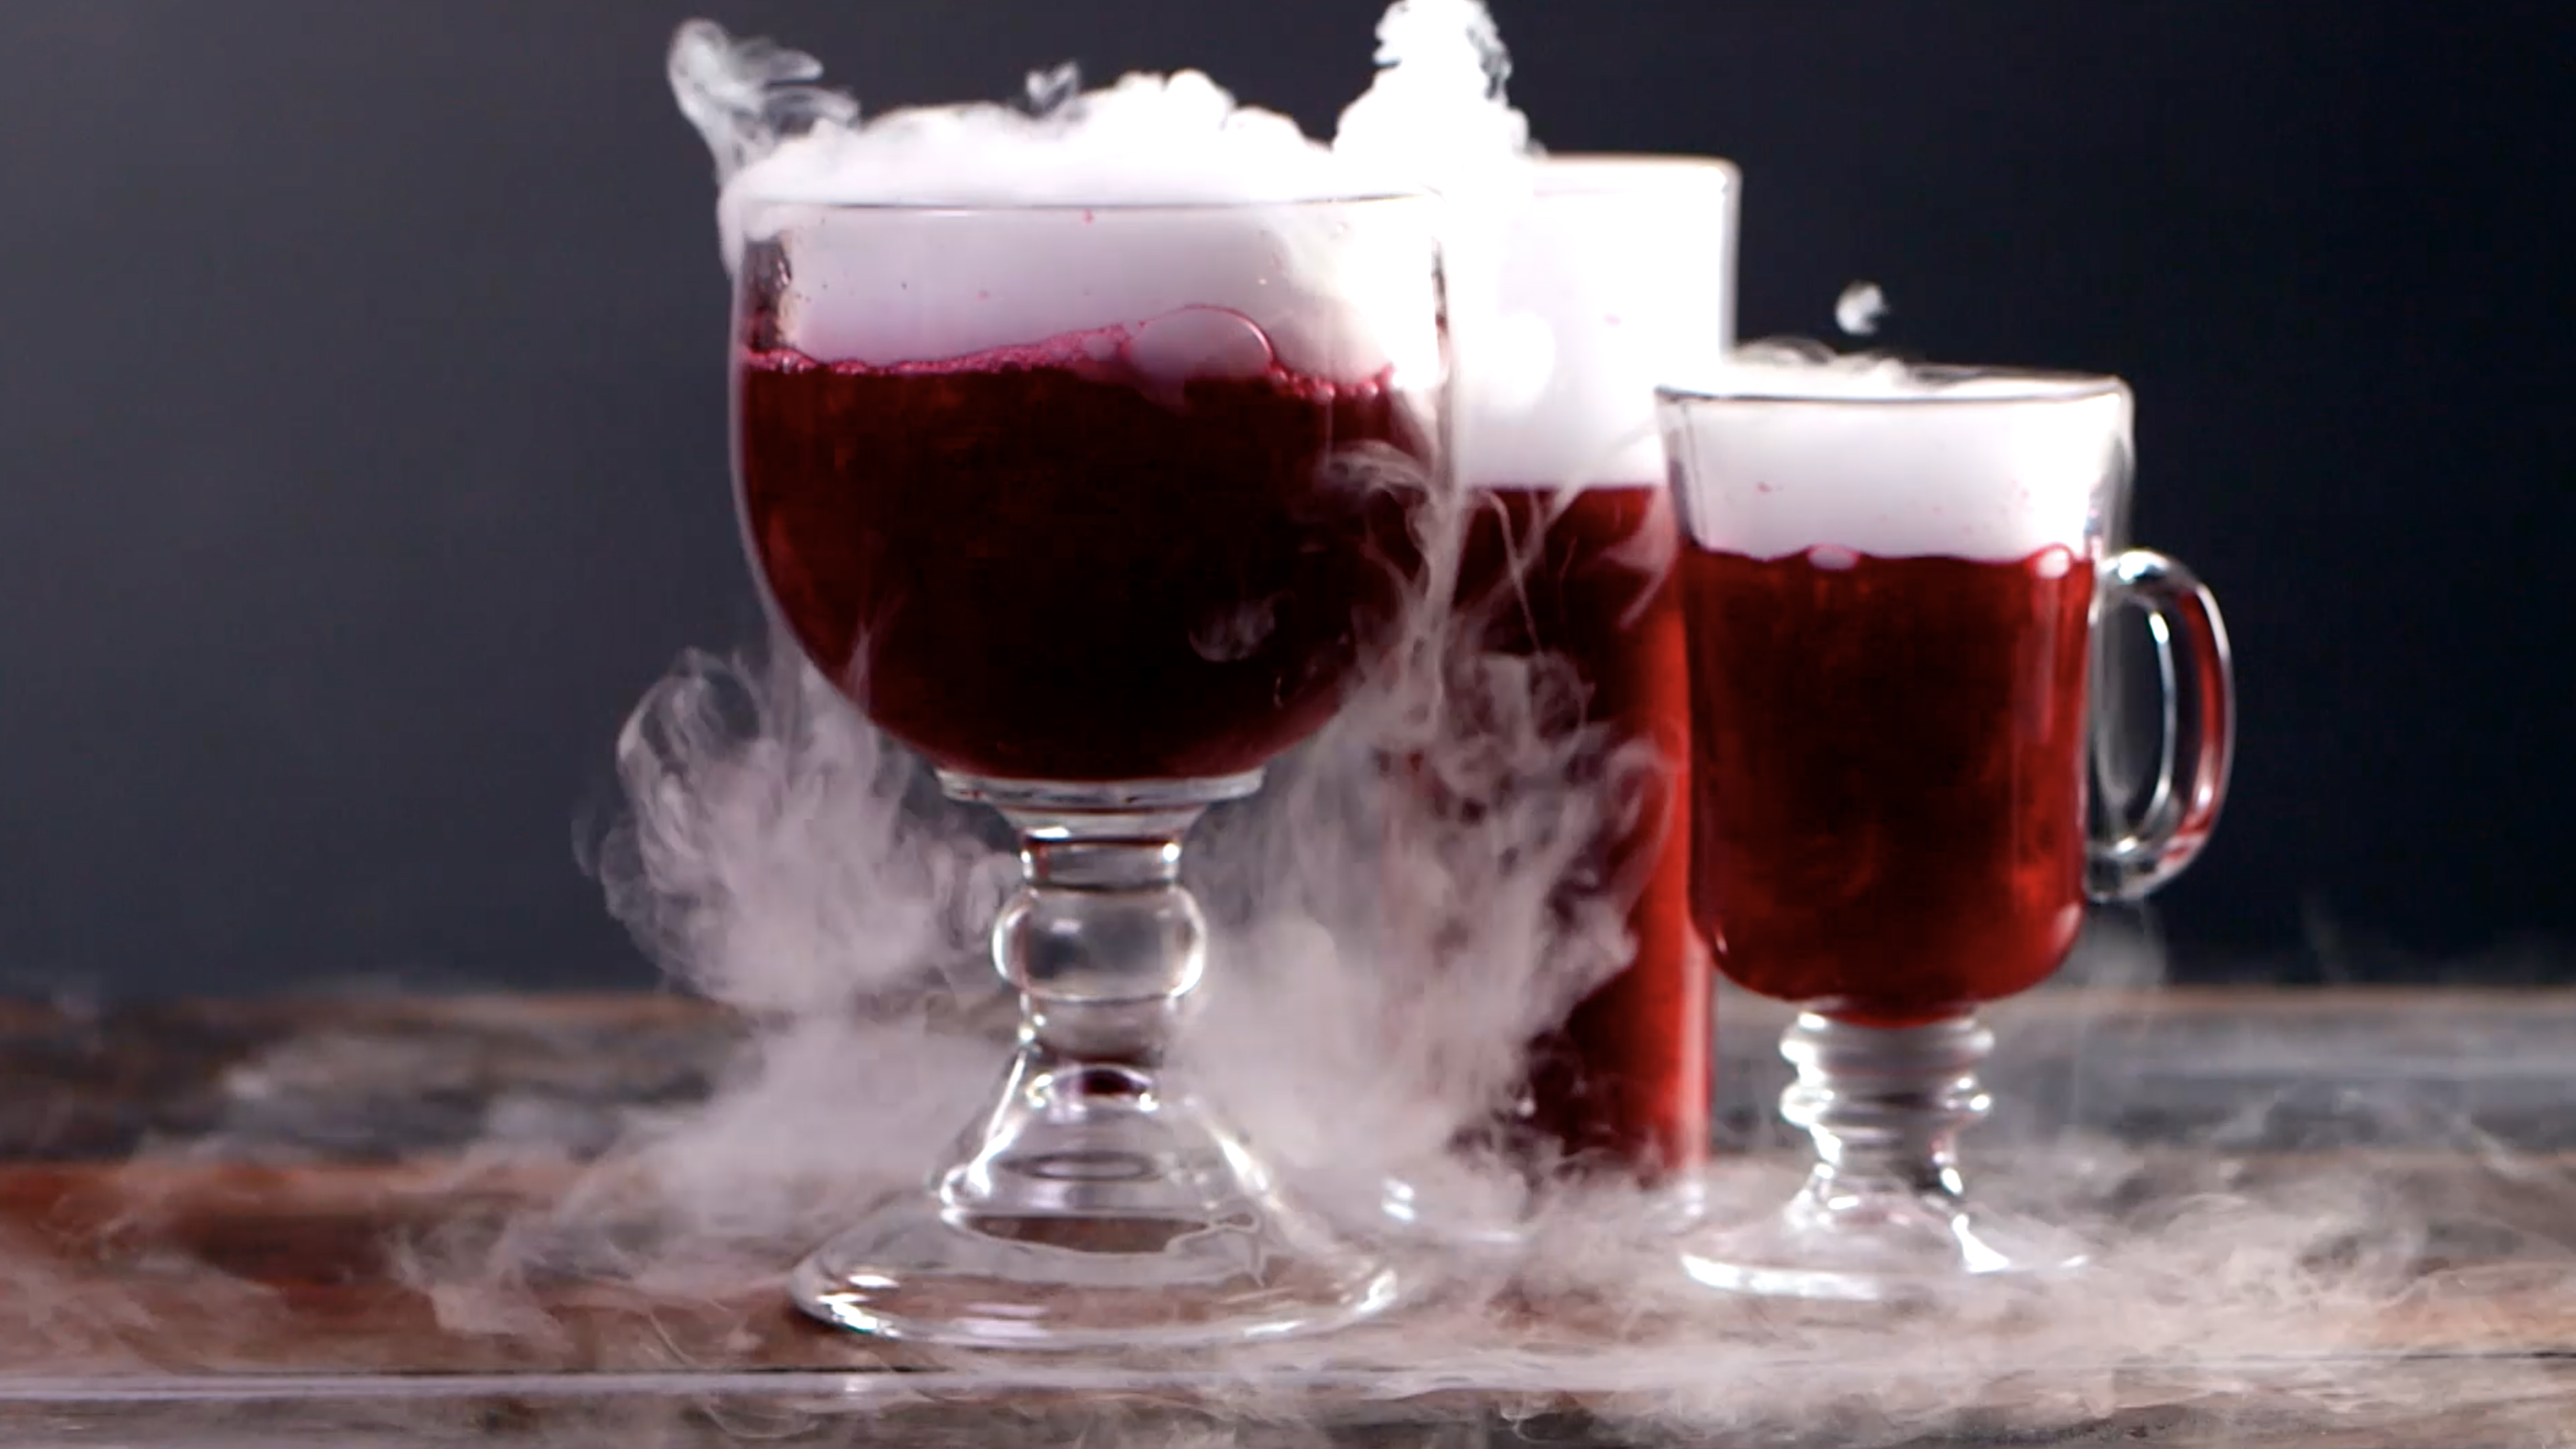 These magical cursed apple-tinis shimmer and smoke in the spookiest way